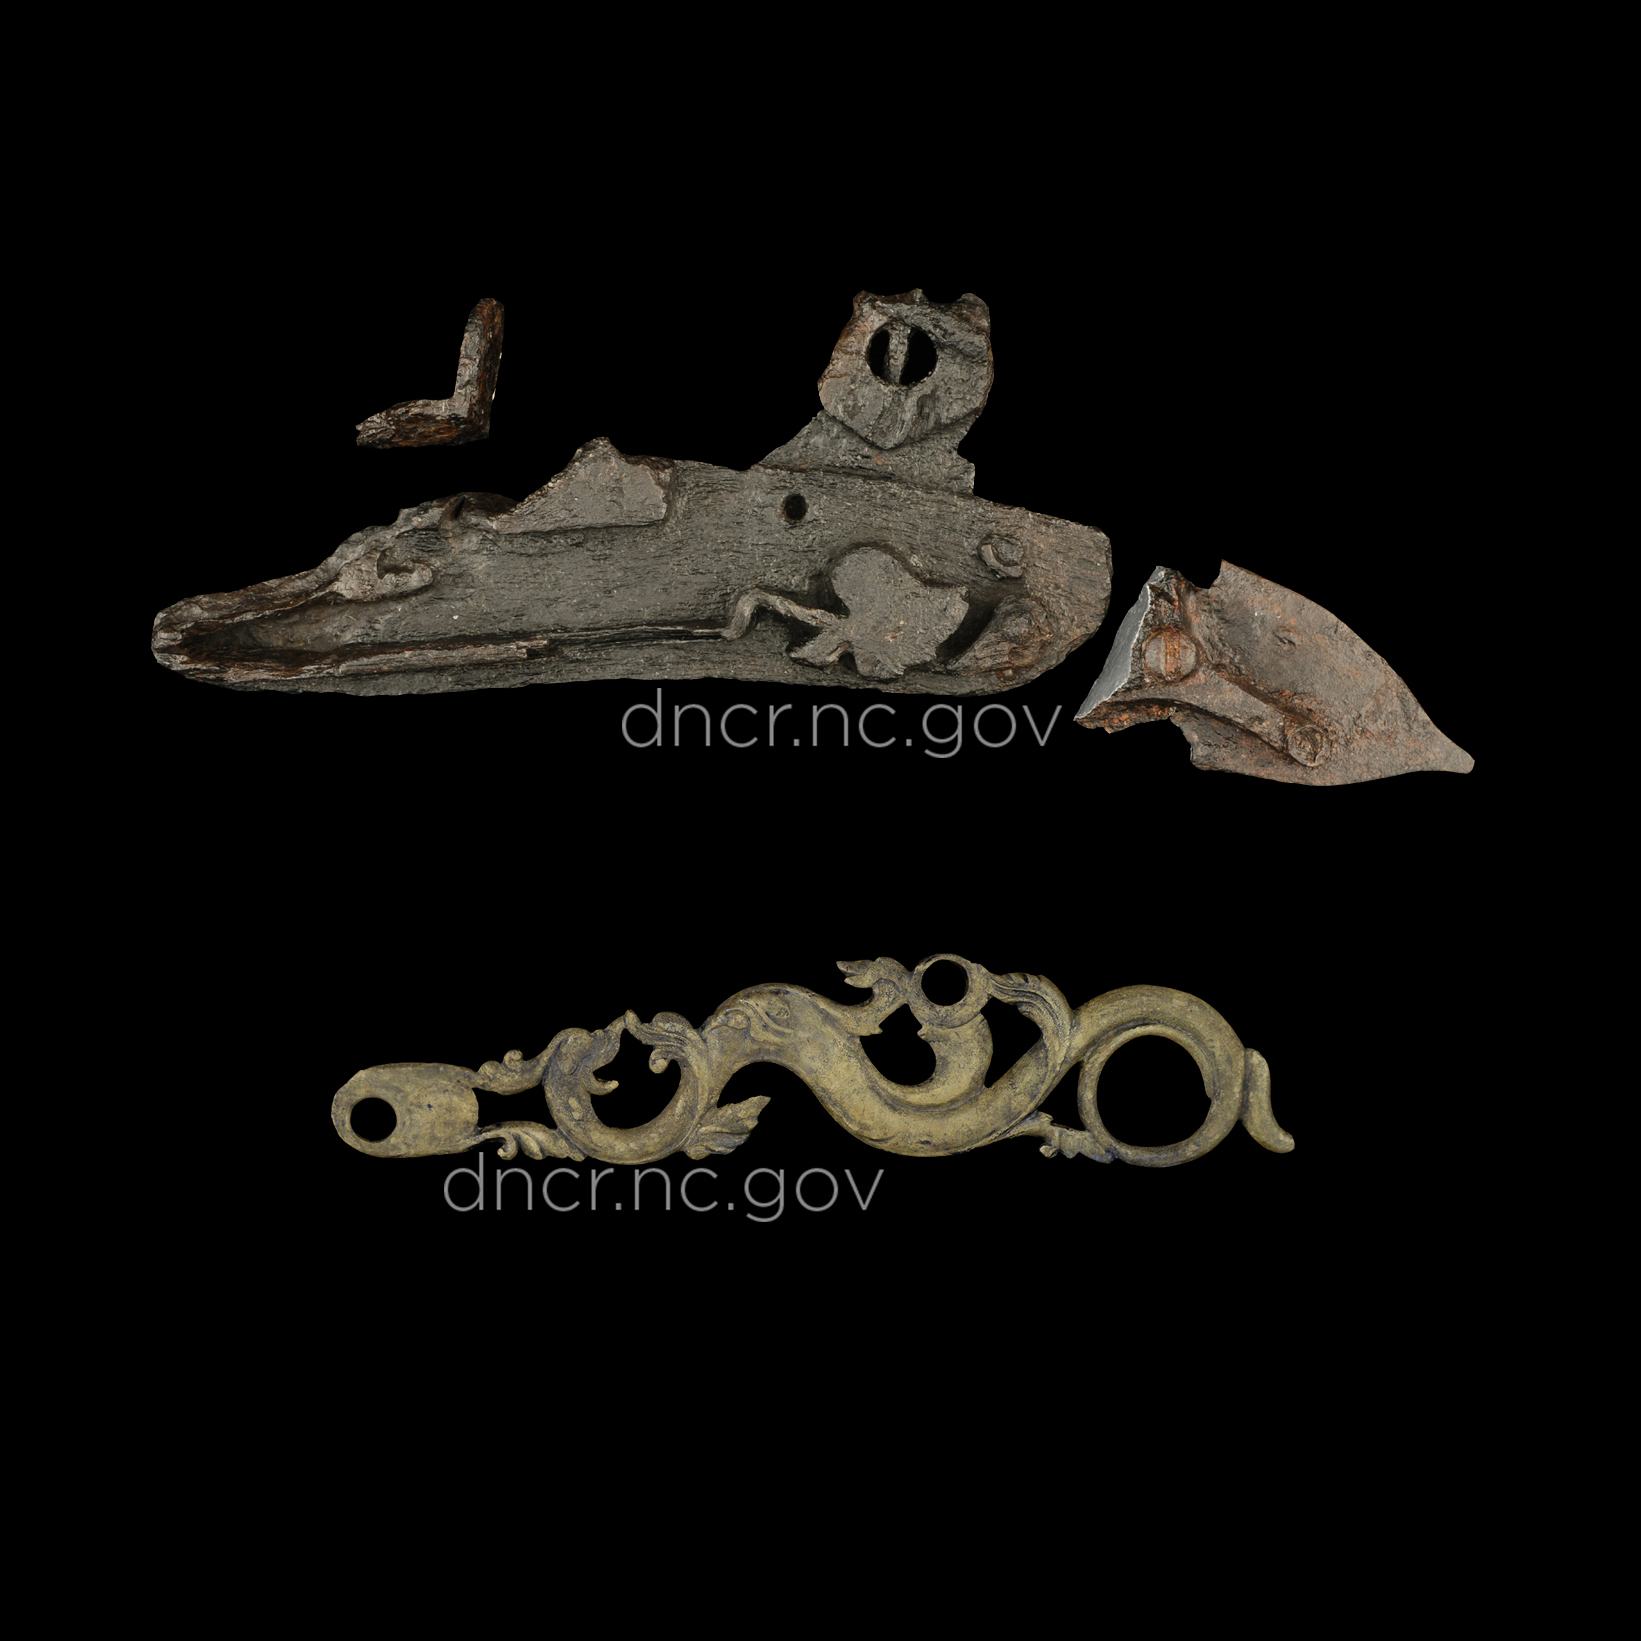 Gun parts from the Queen Anne's Revenge shipwreck.